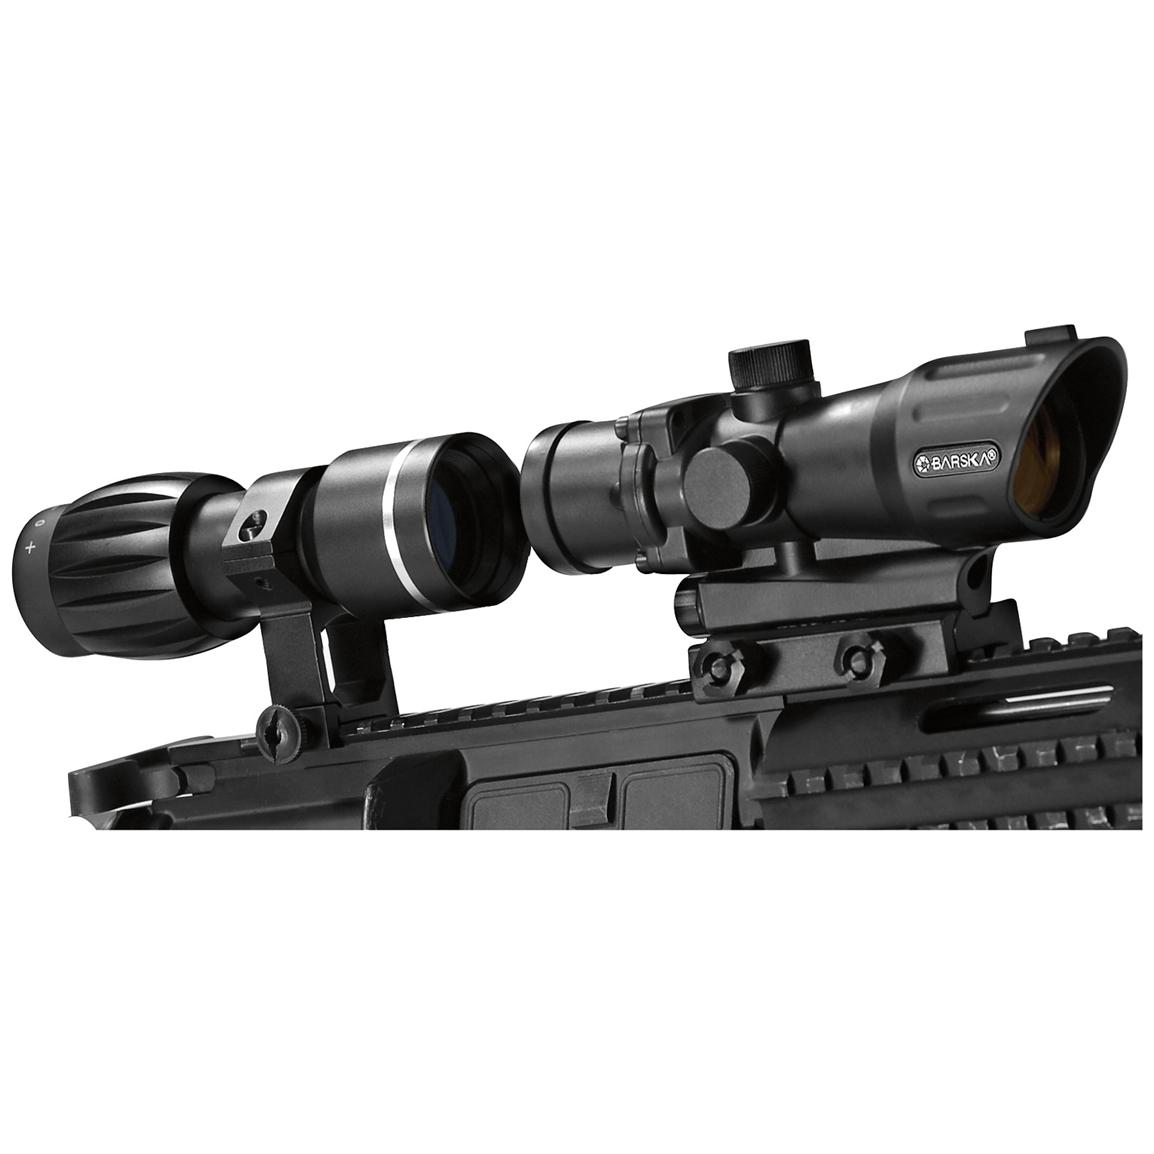 Barska® 1x30 mm Electro Sight with 3X Magnifier, Matte Black